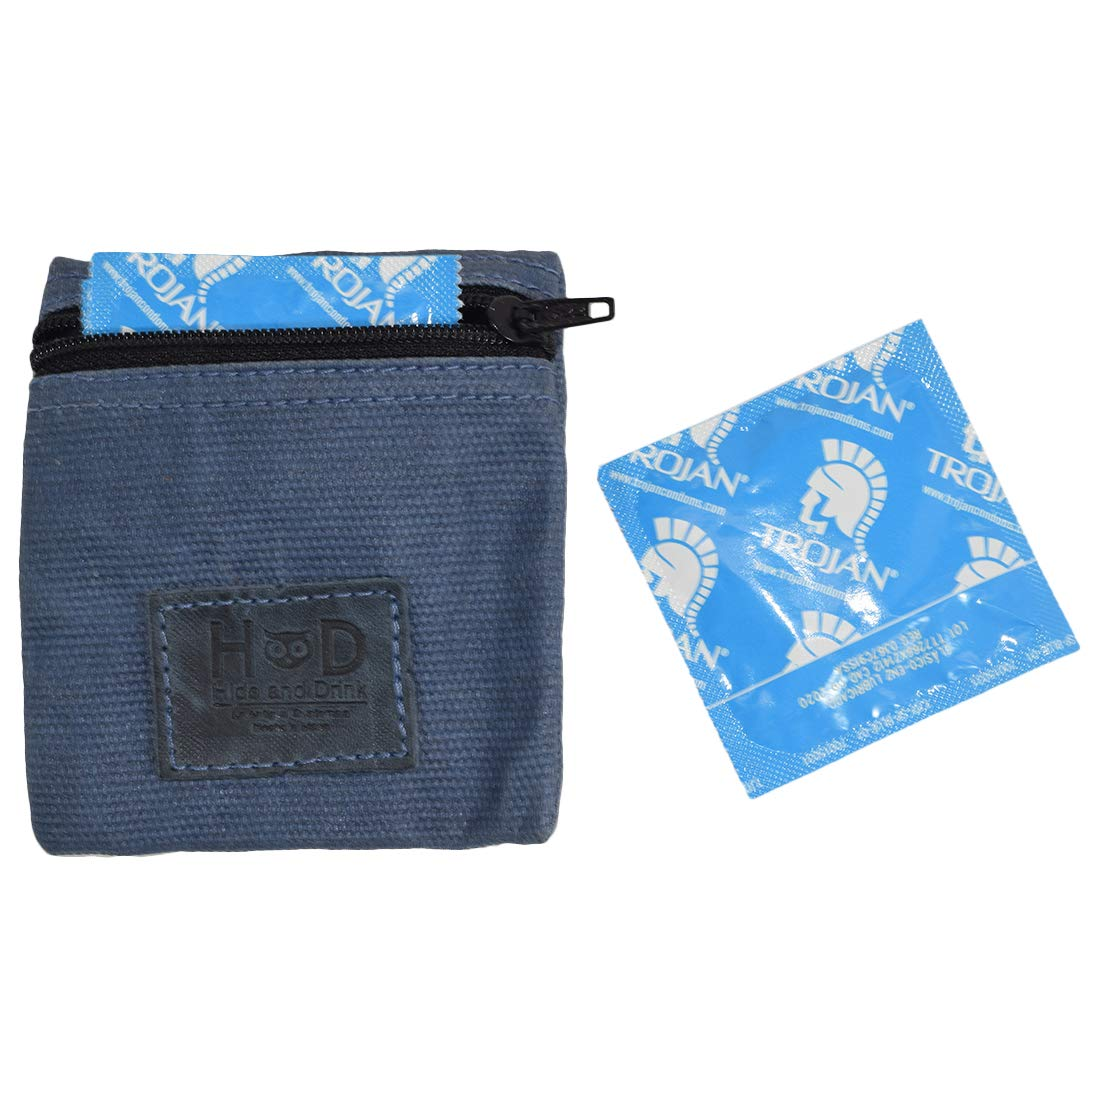 Waxed Canvas Condom Pouch/Change Valuables Pocket Tech Purse Handmade by Hide & Drink :: Blue Mar